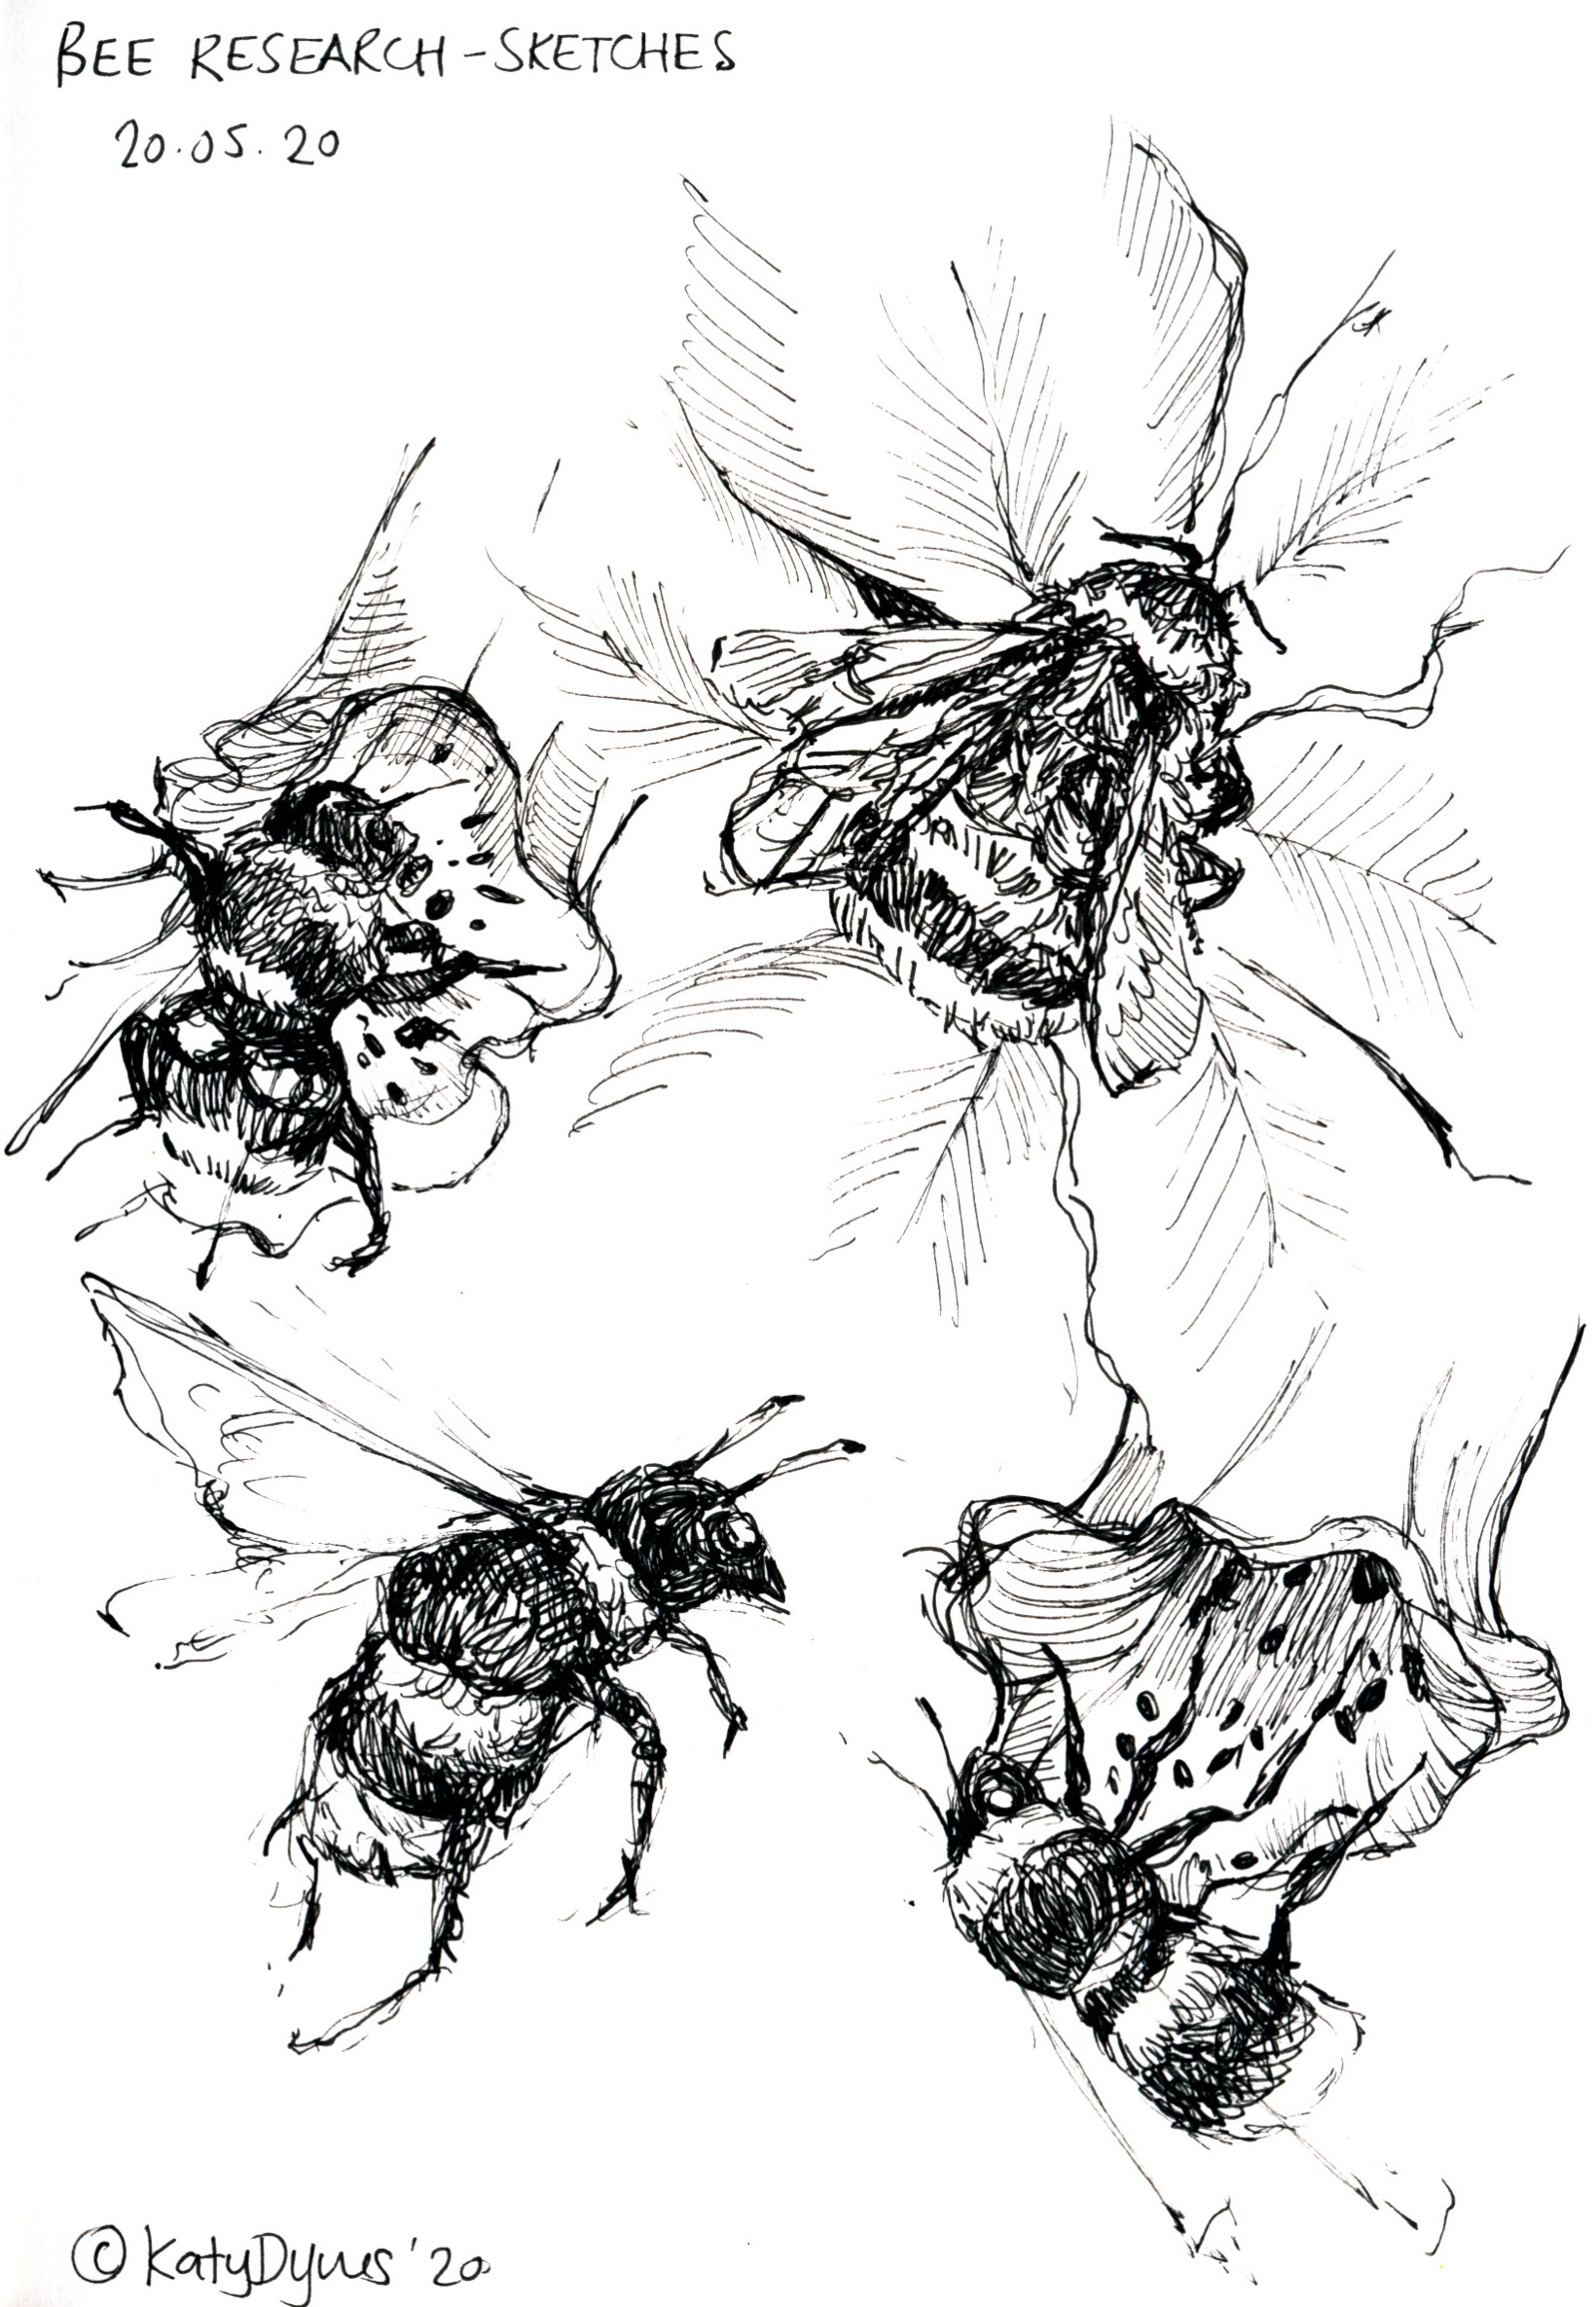 Bees- original pen sketch, 14 x 20